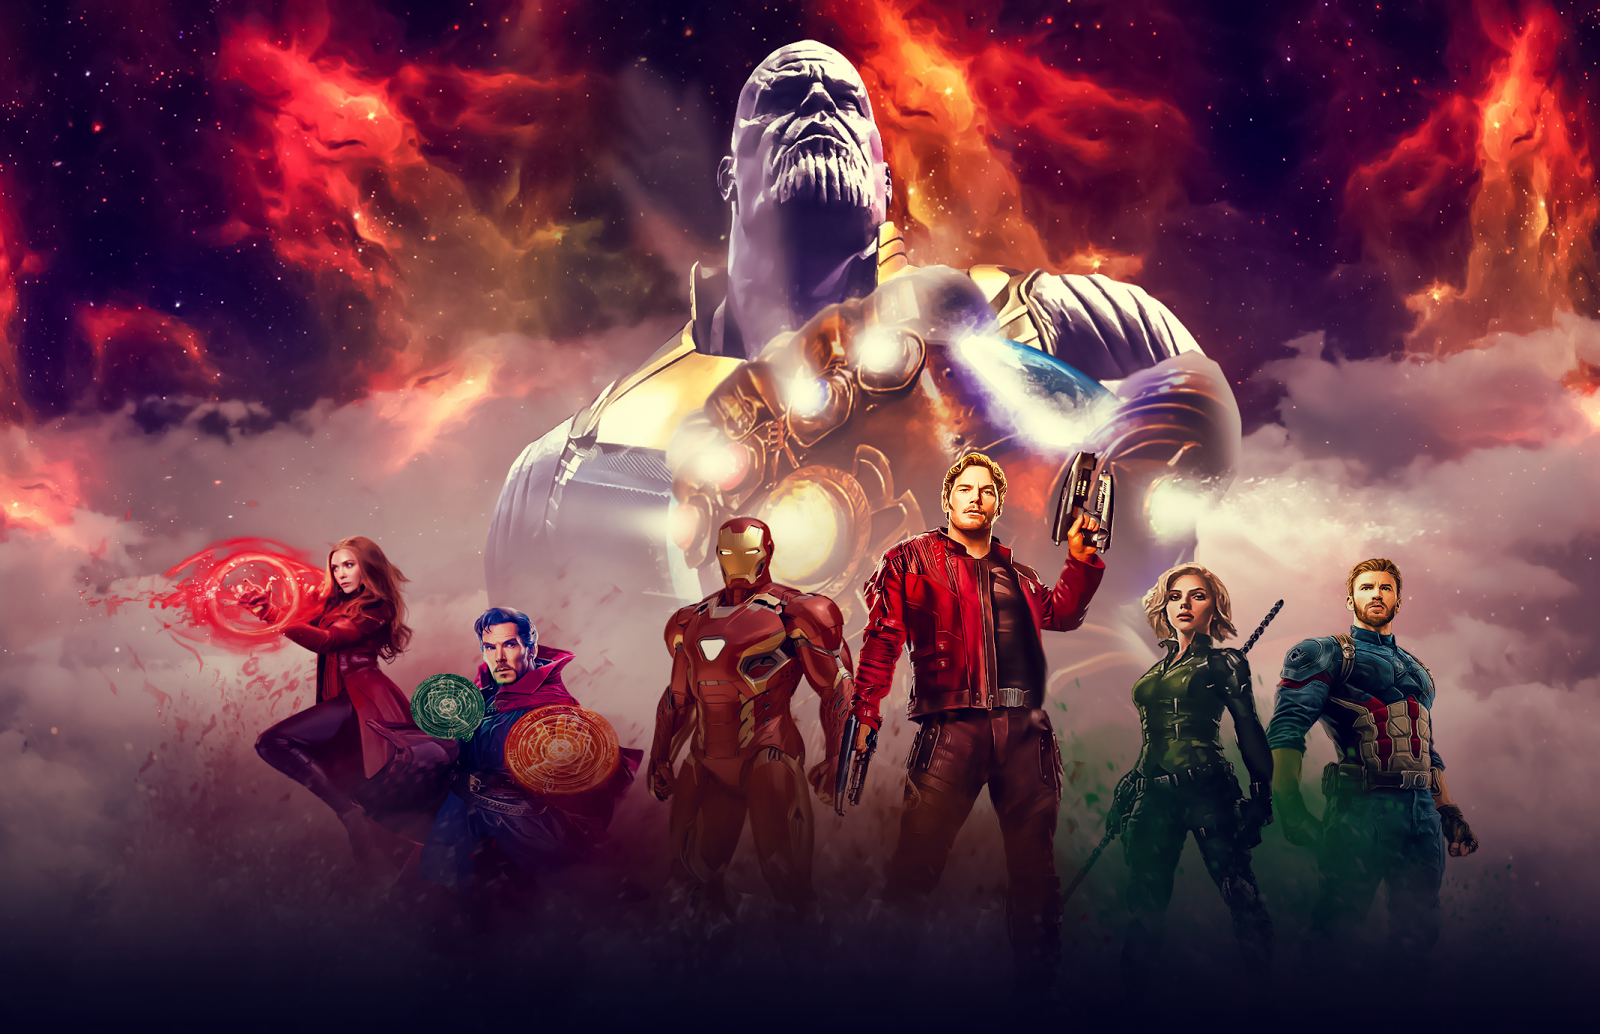 Avengers Infinity War Wallpapers - Avengers Infinity War Movie Poster